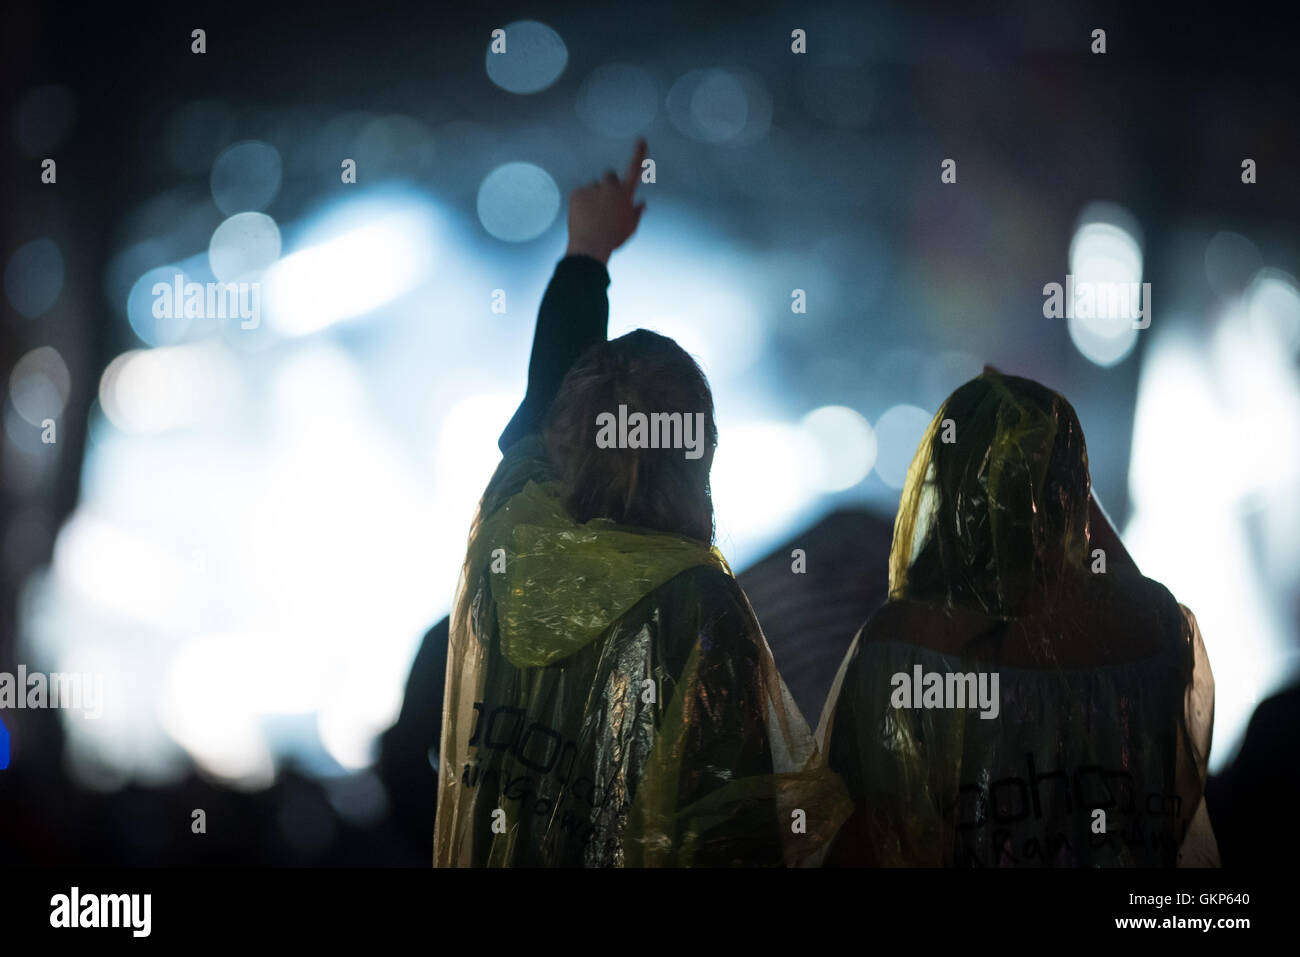 V Festival, Chelmsford, UK. Sunday 21st August 2016. Ponchos and umbrellas come out at the end of the third and - Stock Image